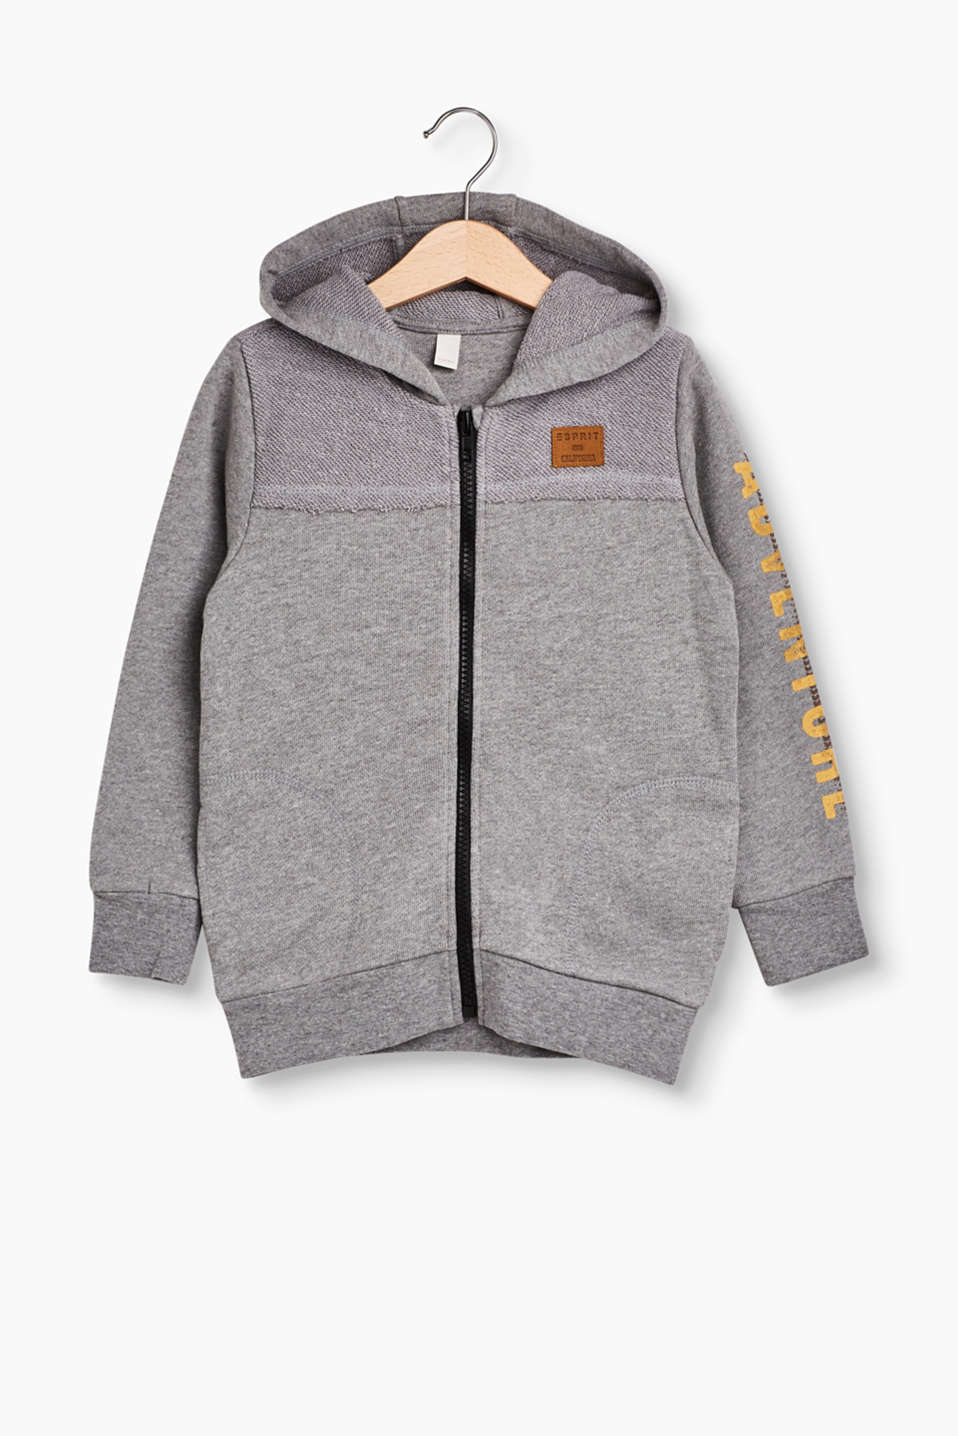 Esprit - Hooded sweatshirt jacket, inside-out effect